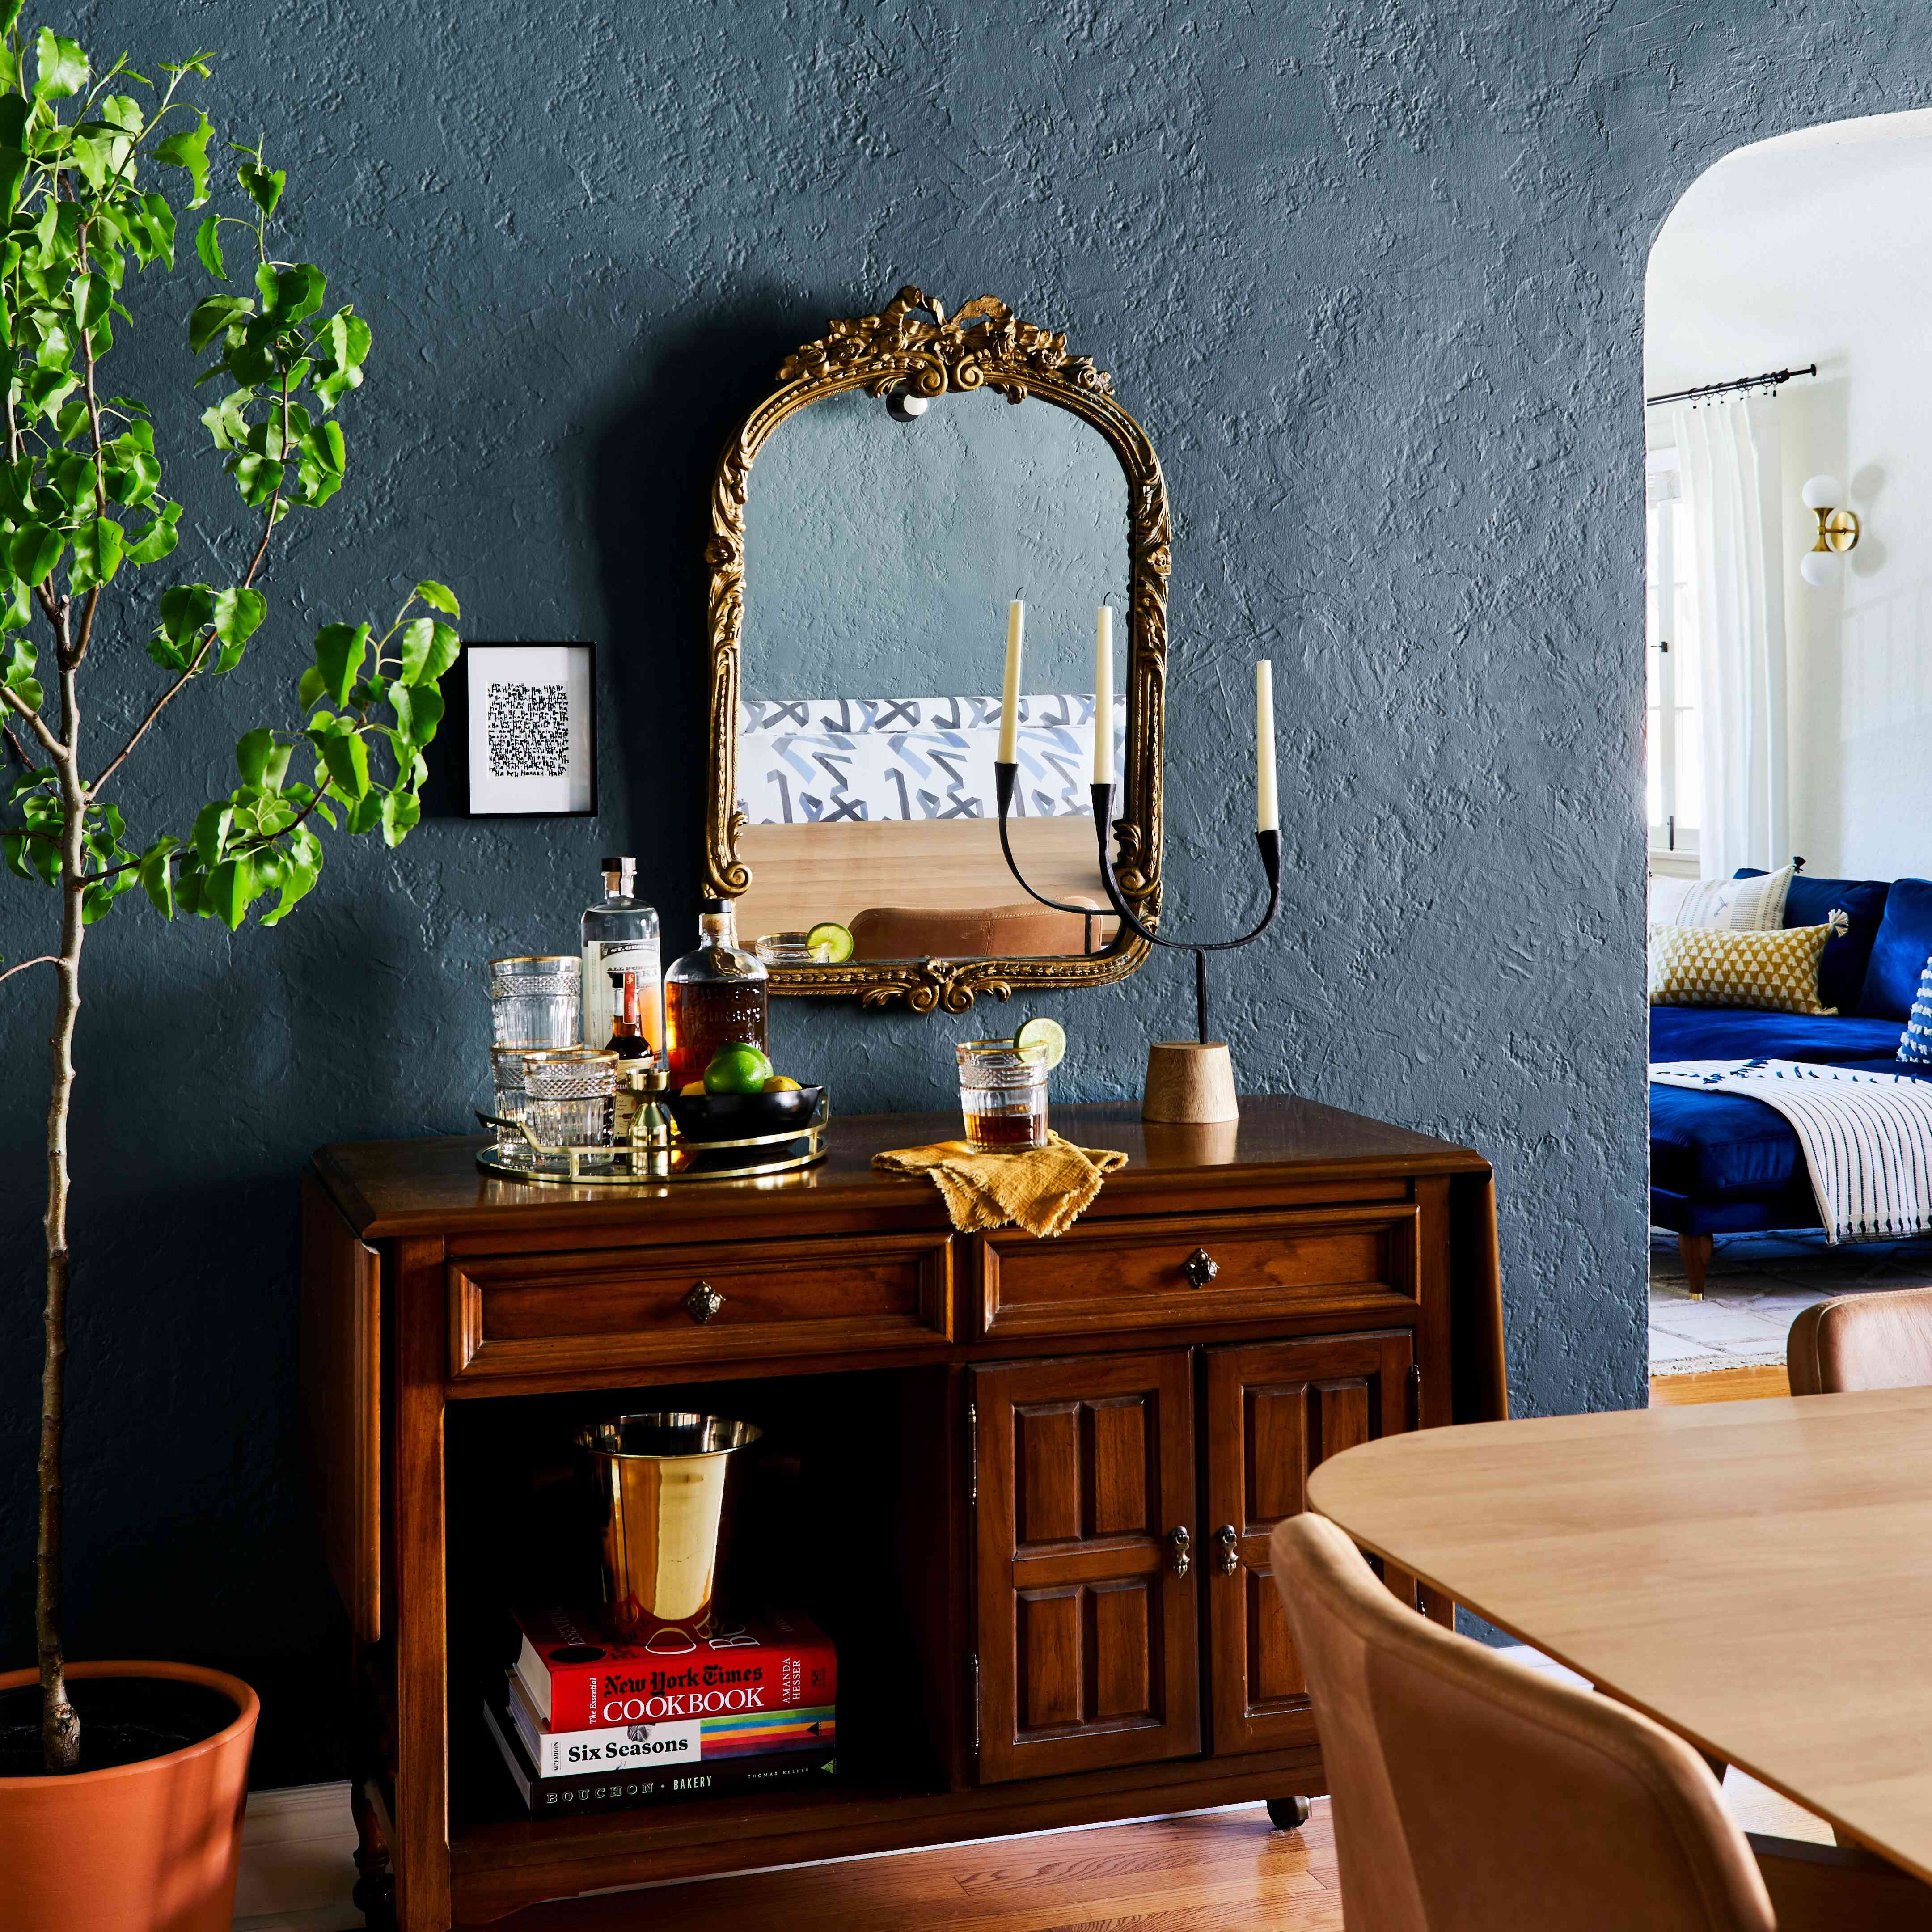 32 Dining Room Storage Ideas: How To Furnish A Dining Room